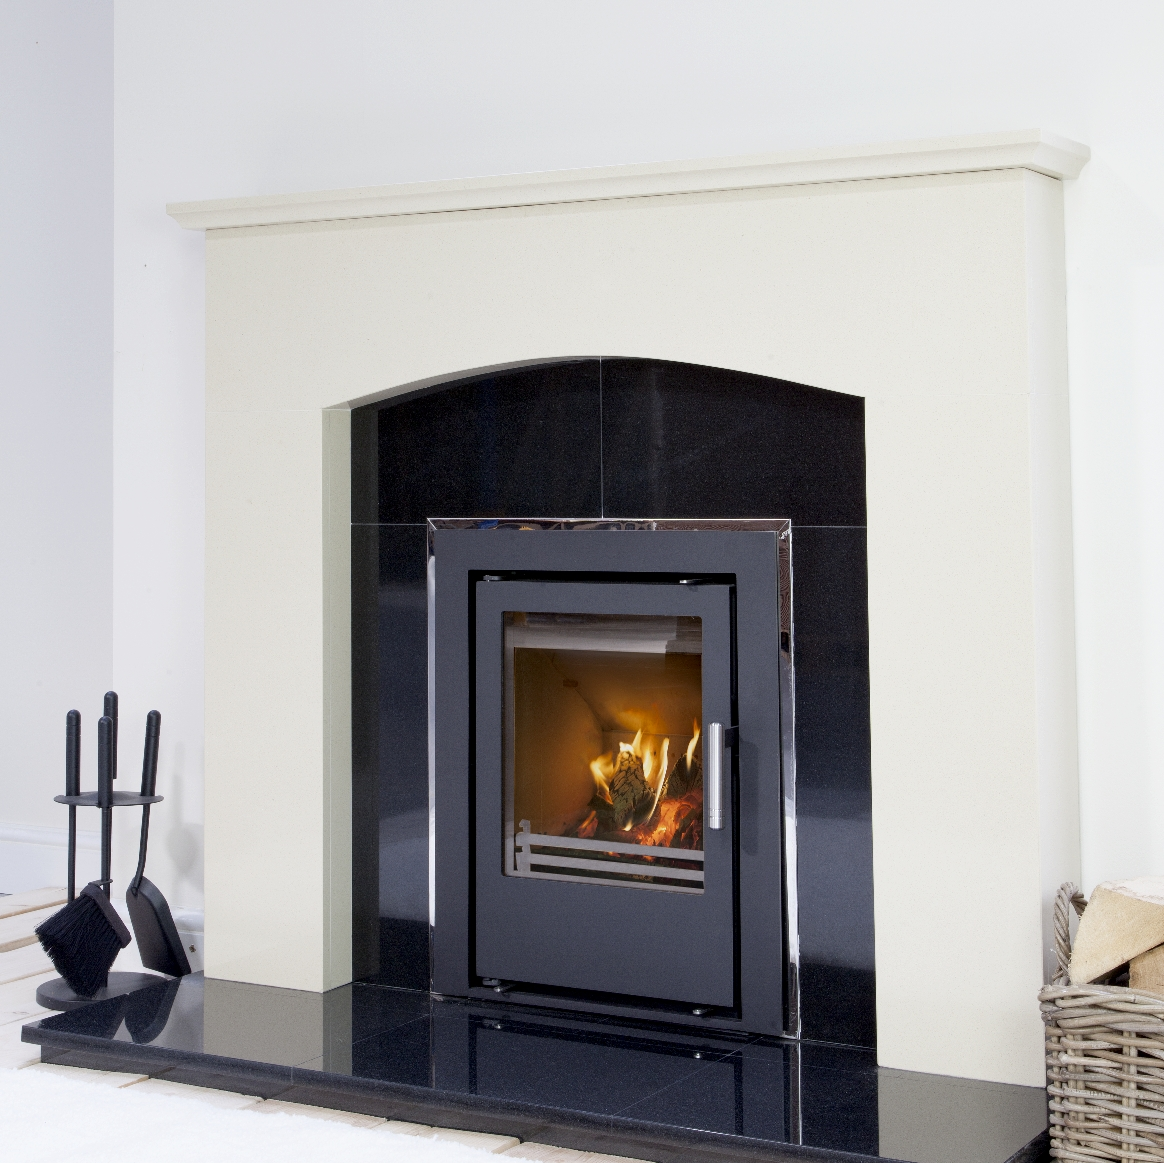 for compact heating solutions for smaller spaces mendip